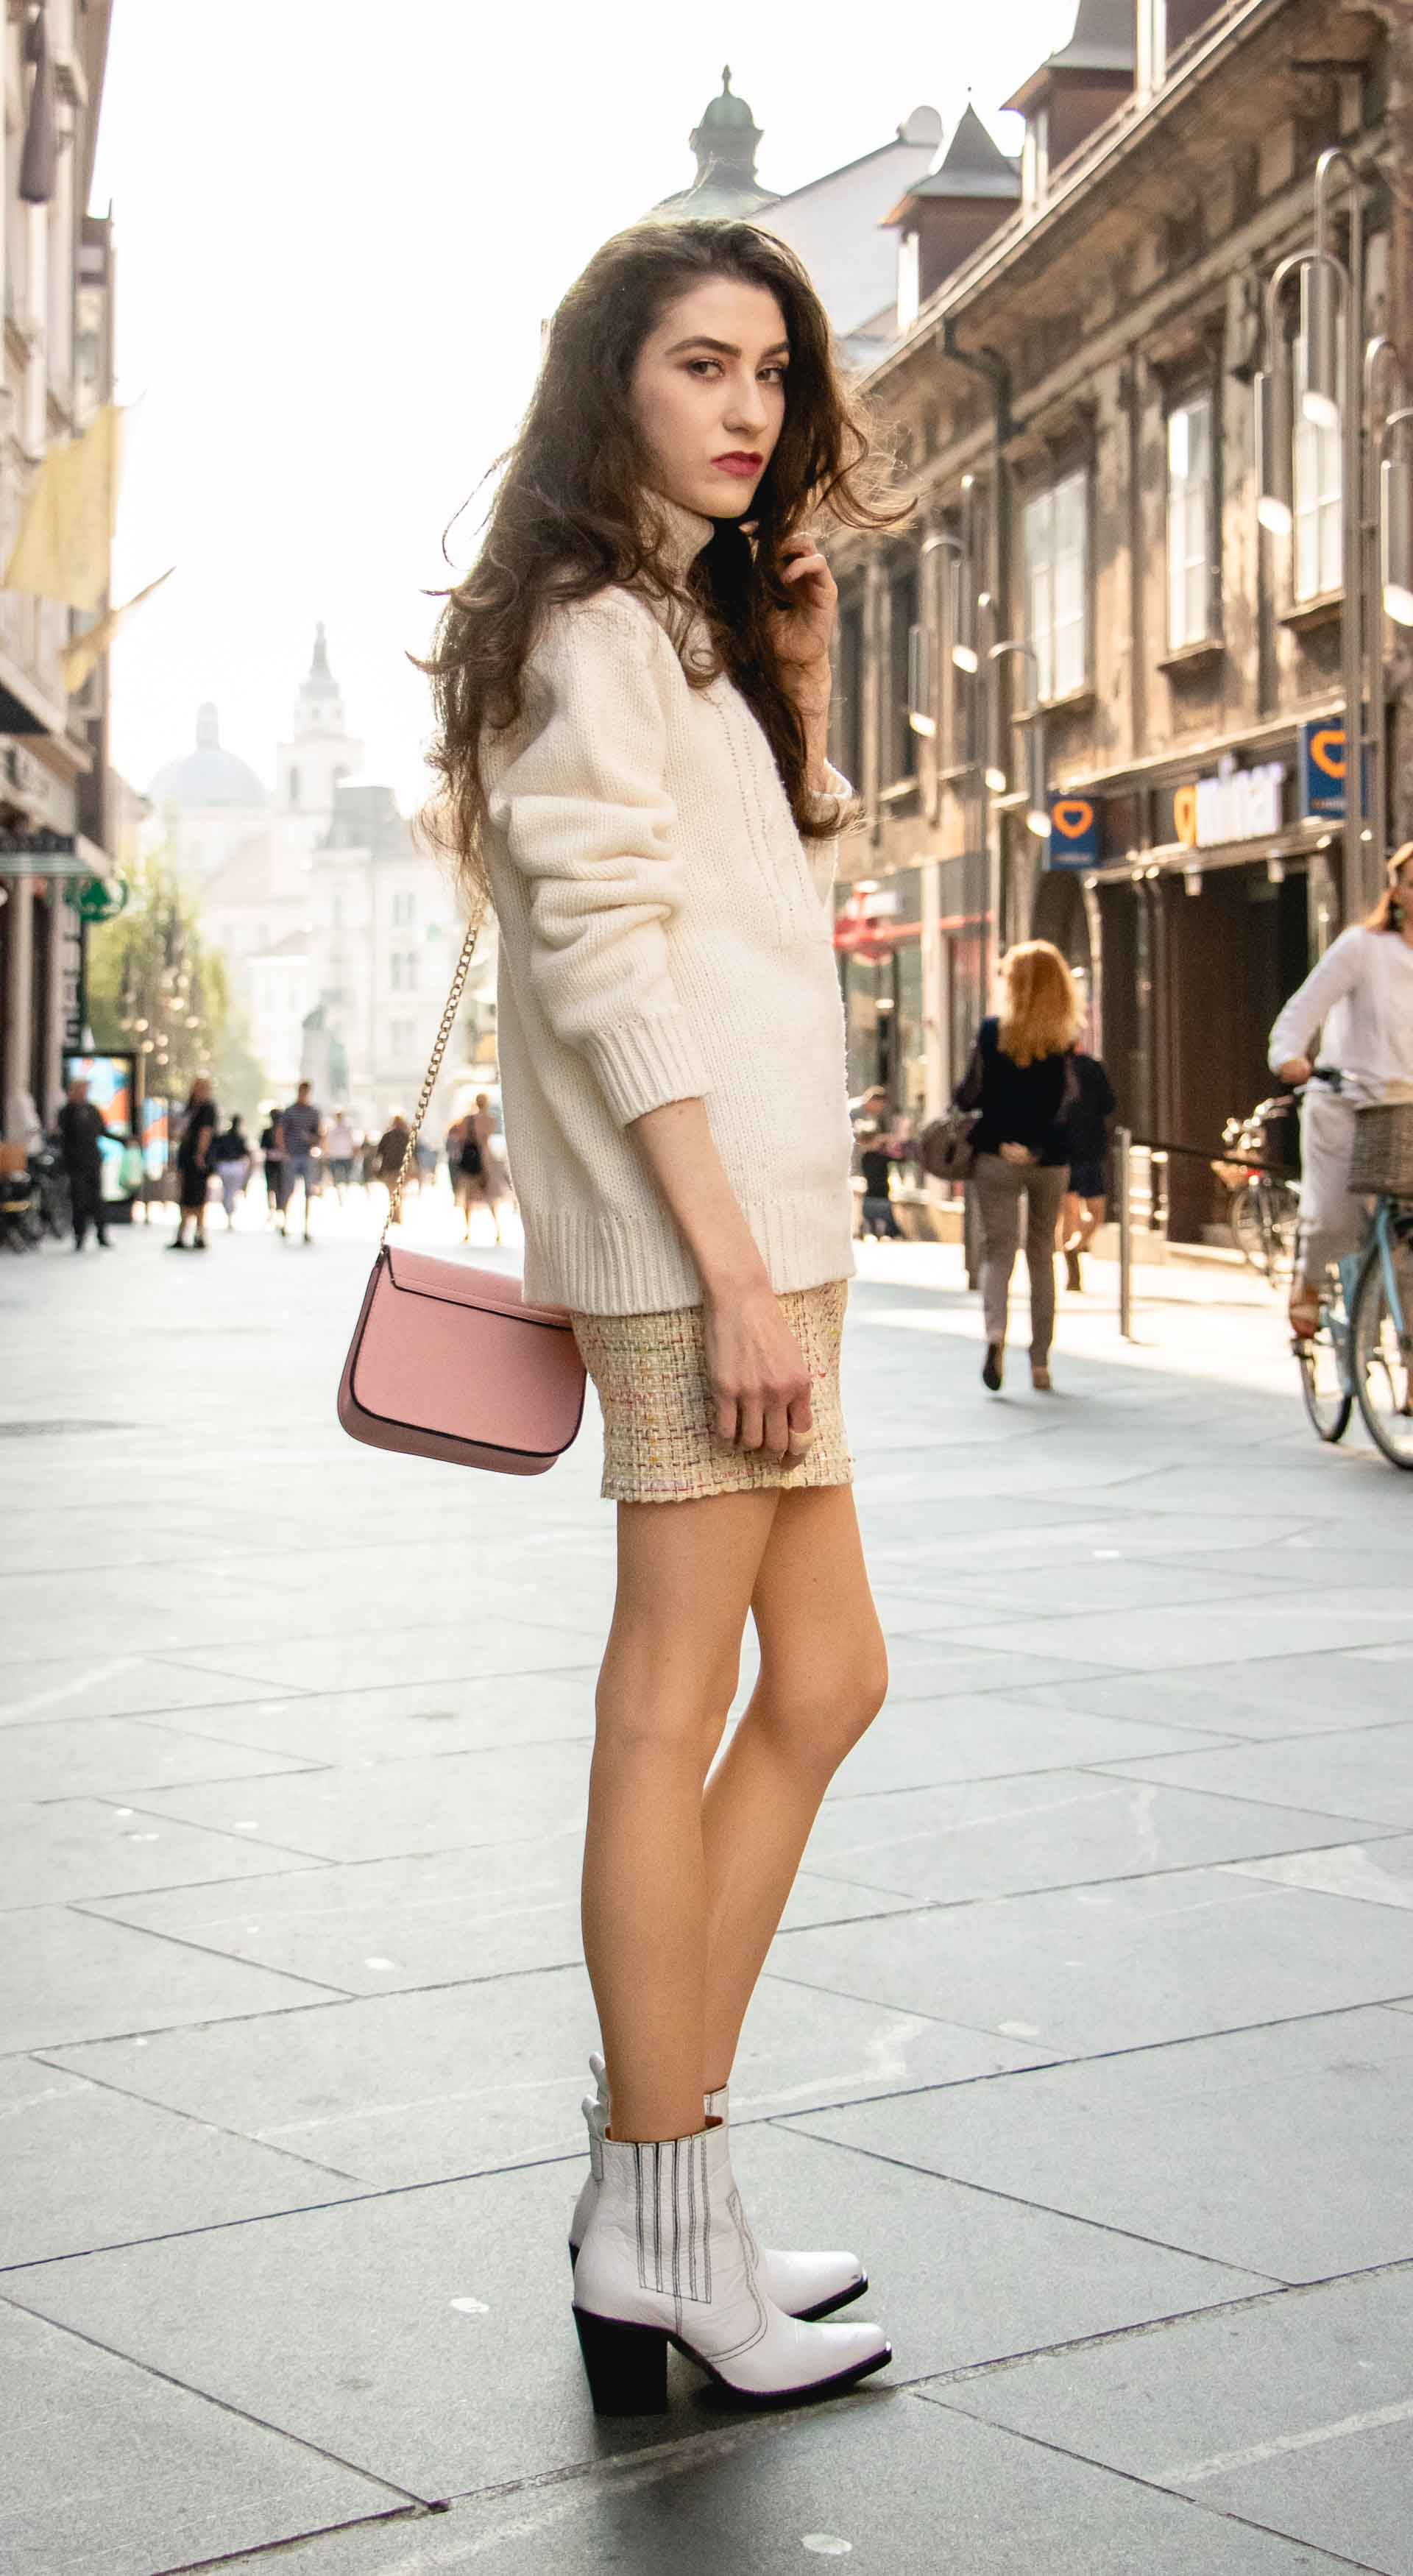 Beautiful Slovenian Fashion Blogger Veronika Lipar of Brunette from Wall dressed in white Ganni Western boots, yellow tweed skirt, white turtleneck sweater, chain strap shoulder bag standing on the street in the morning in Ljubljana in fall